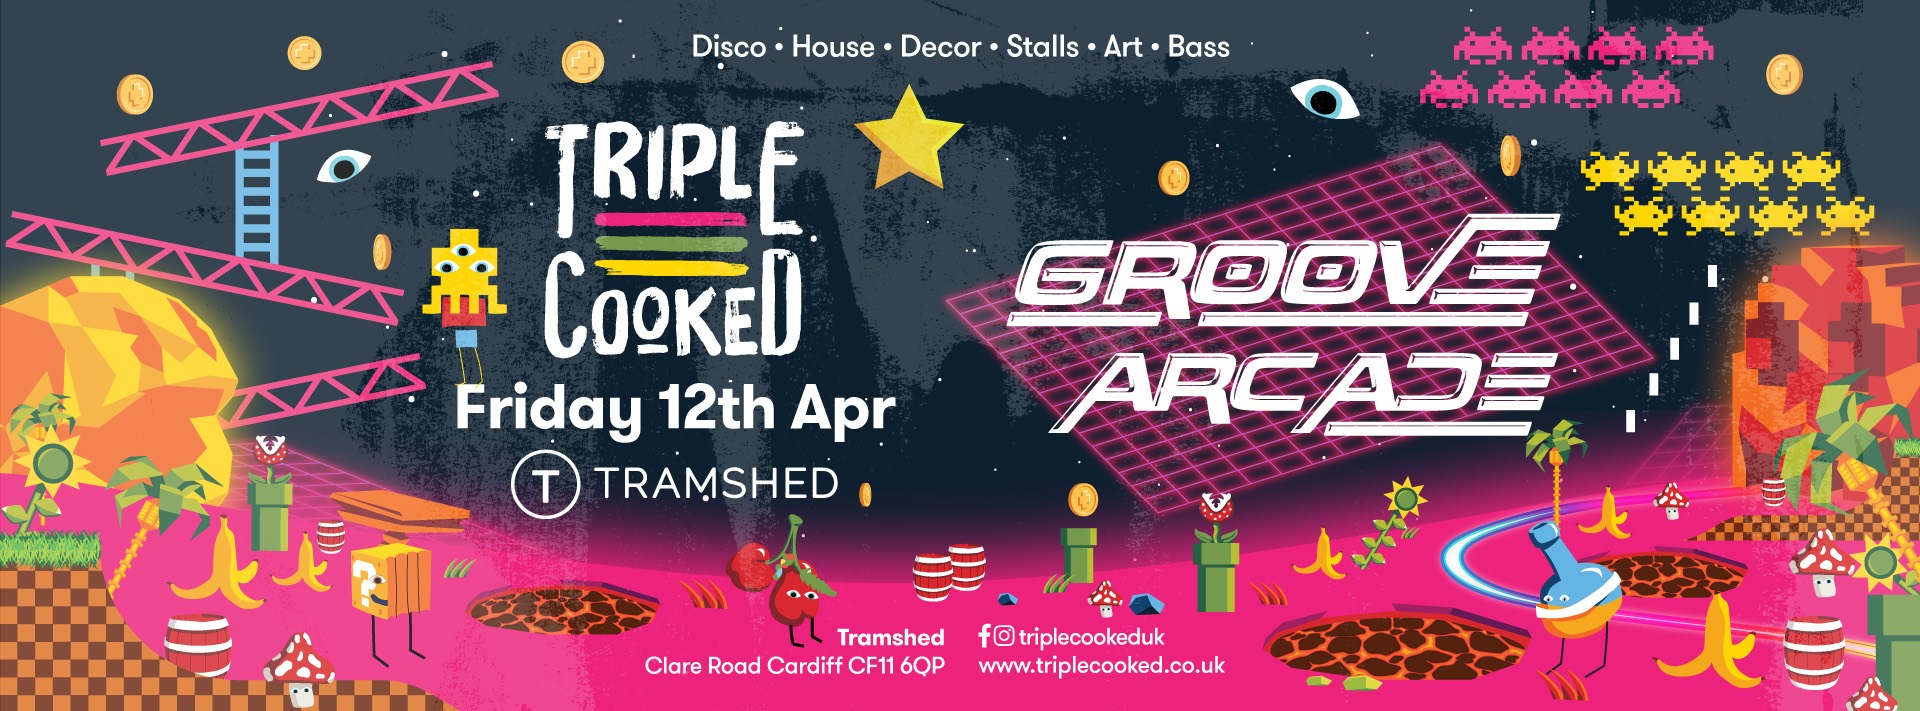 Triple Cooked: Cardiff – Groove Arcade